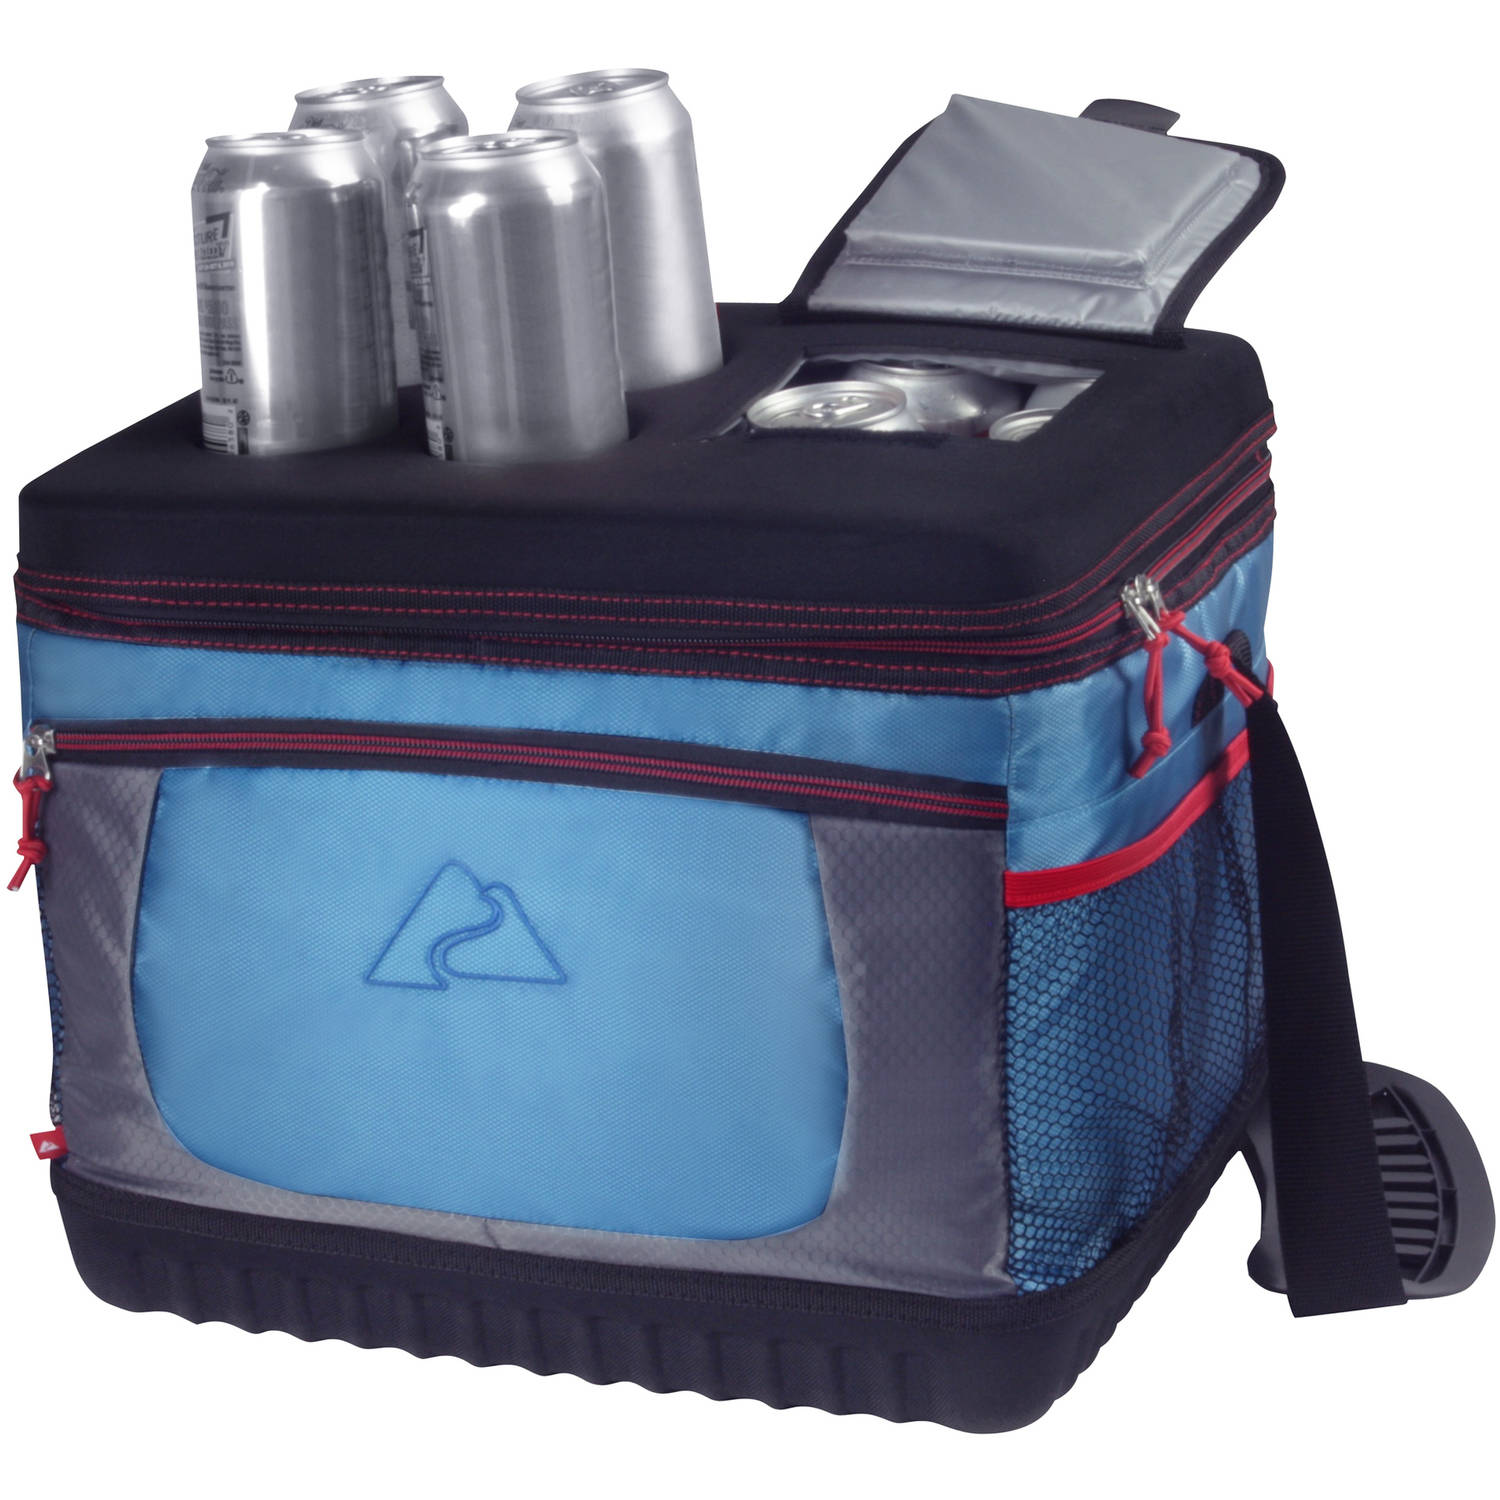 Ozark Trail 30-Can Extreme Cooler, Blue